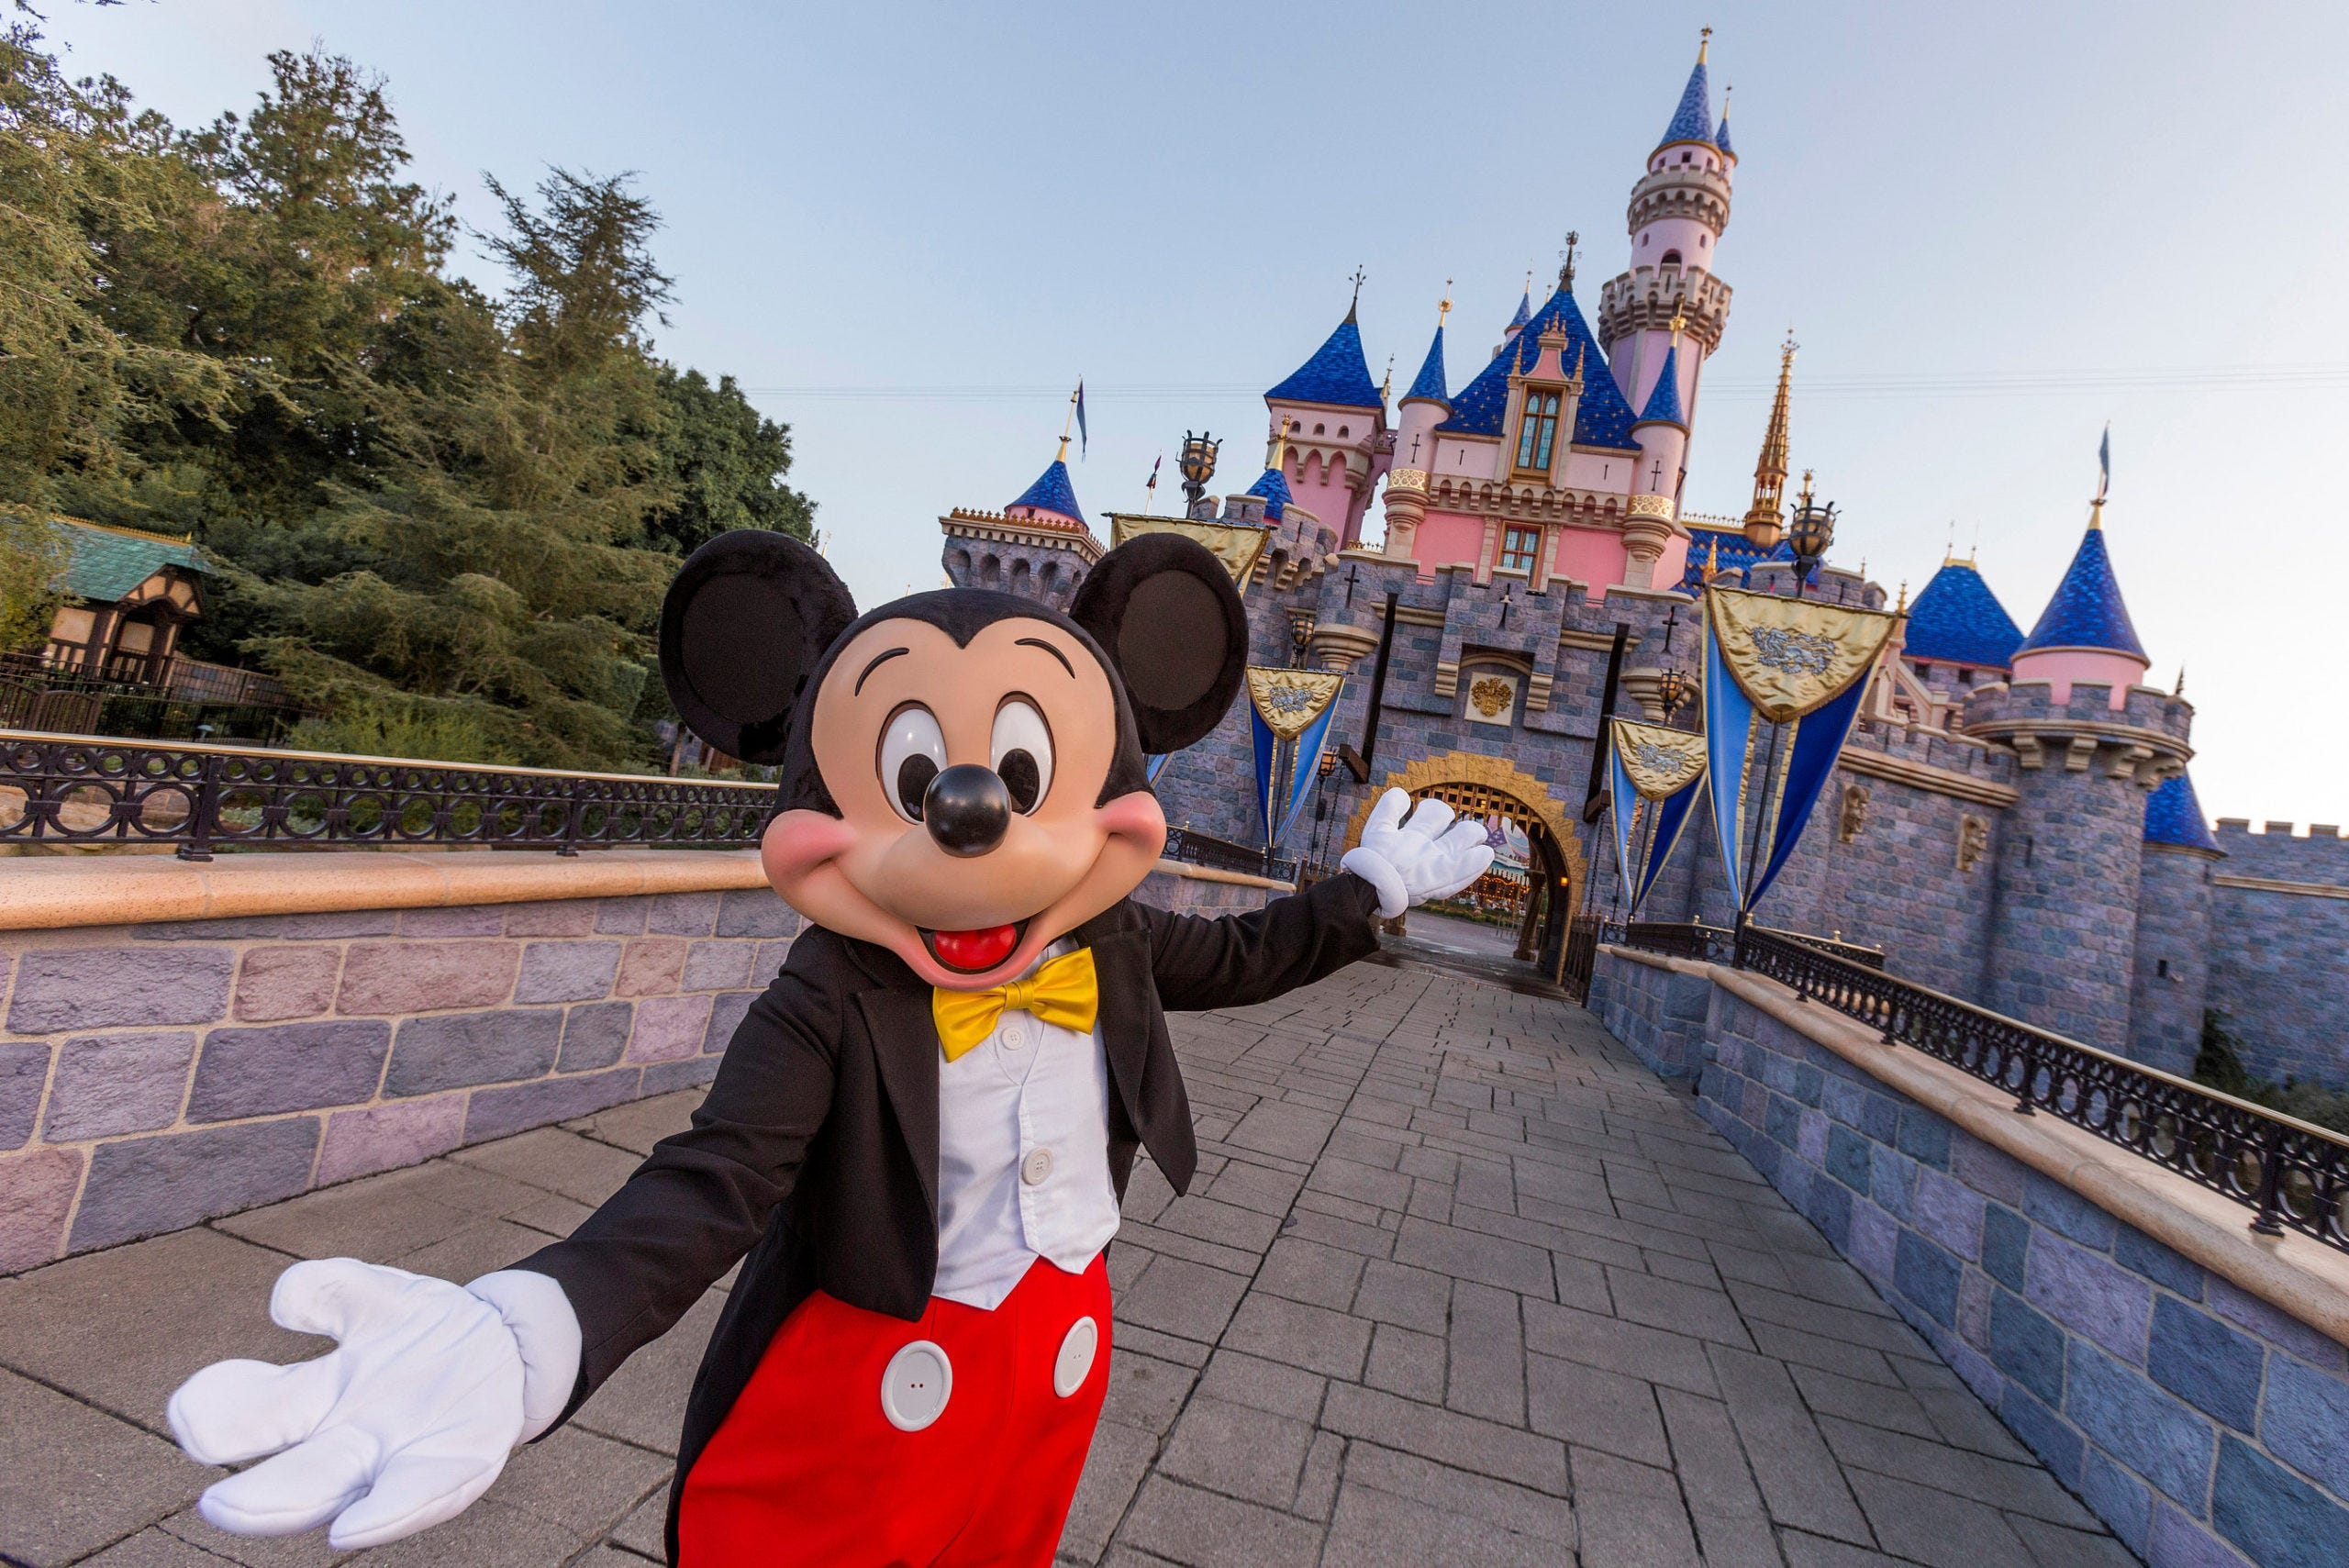 'We have waited so long for this': Disneyland reopens after 412 days